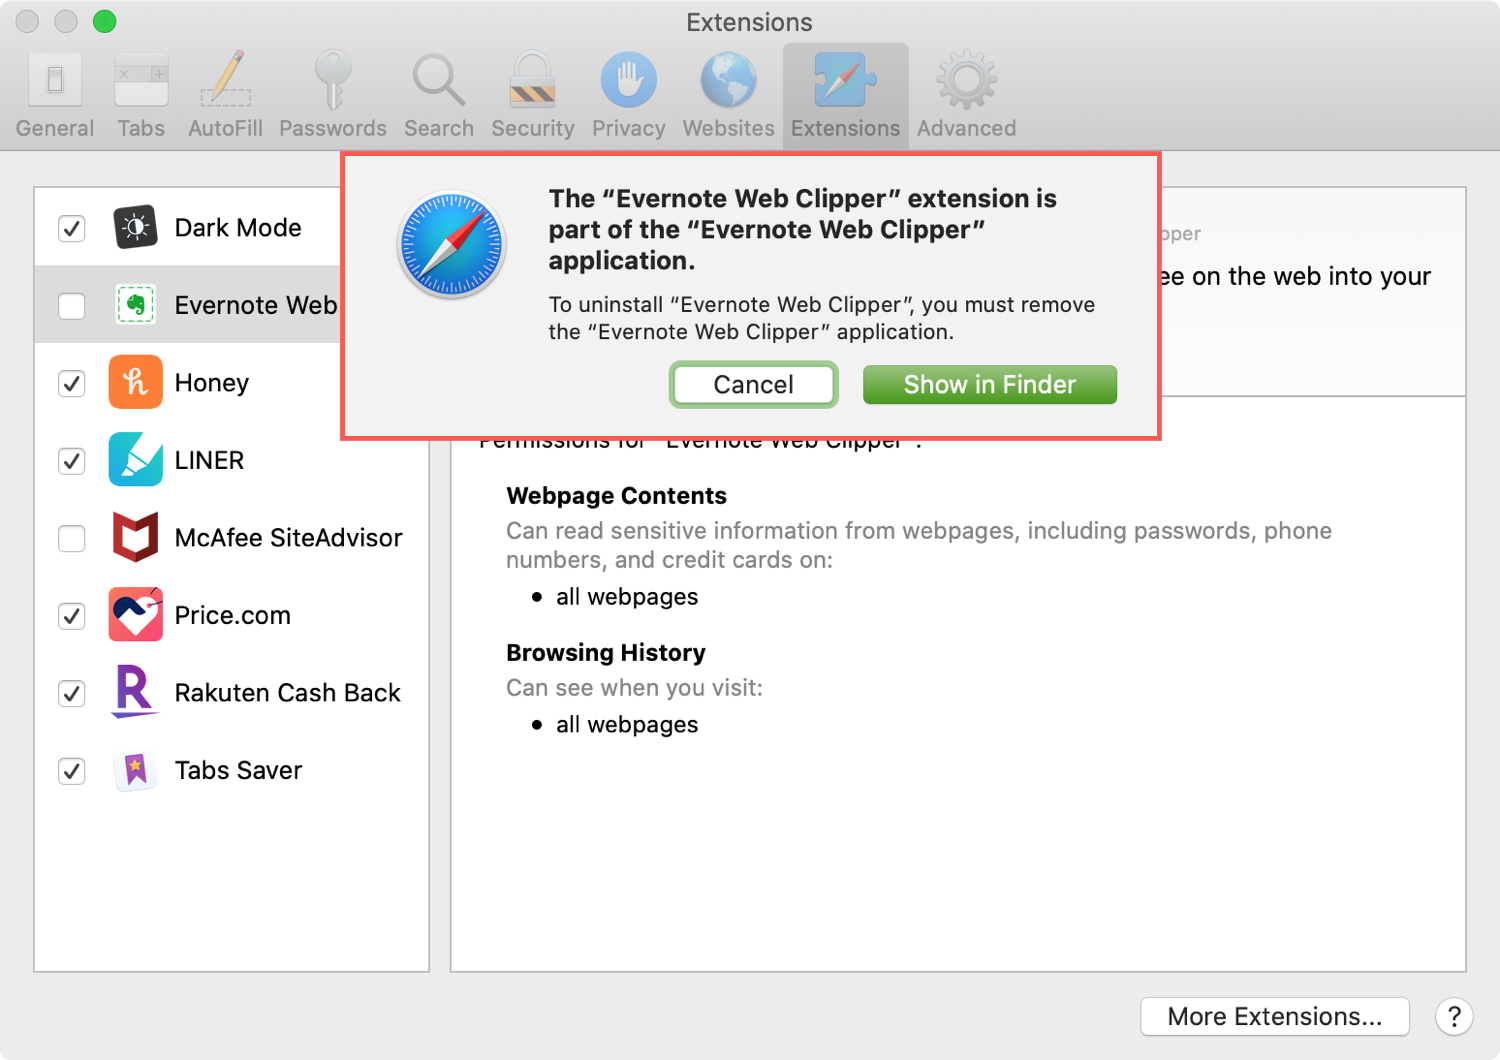 Safari Uninstall Extension - Evernote